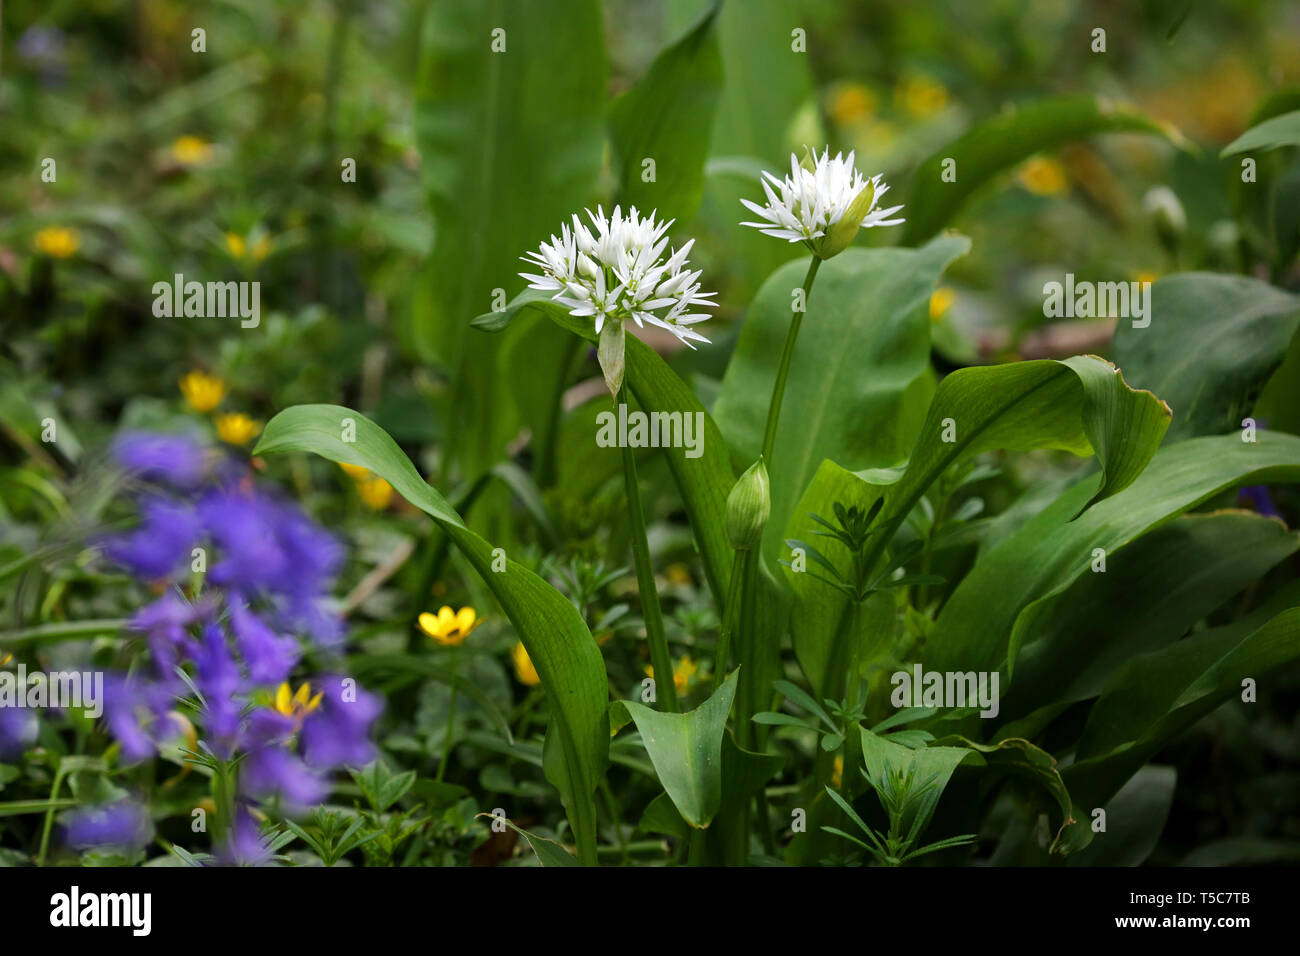 Wild garlic flowering plant - Stock Image